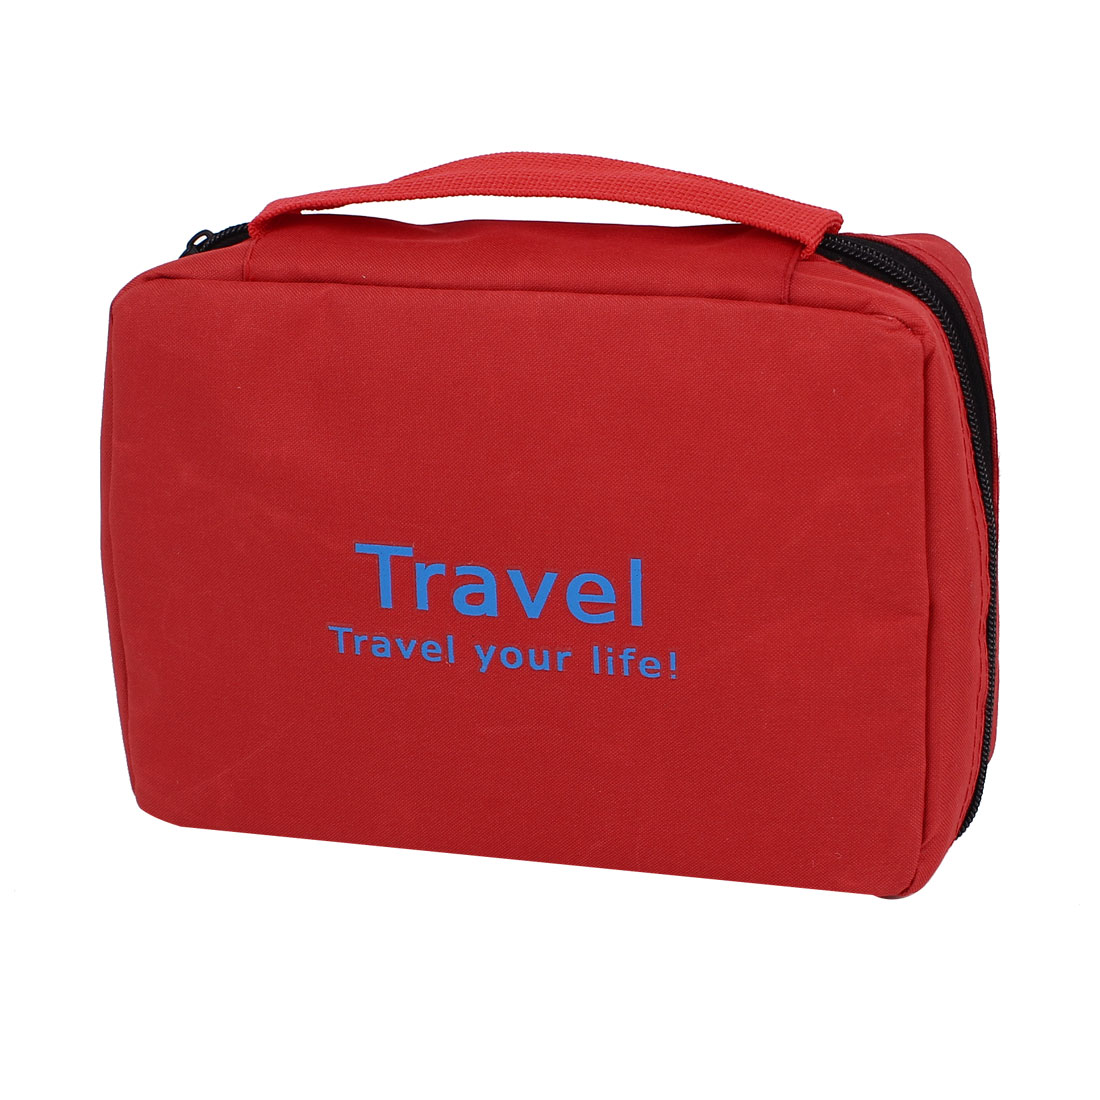 Business Trip Travel Toiletry Toiletries Cosmetic Beauty